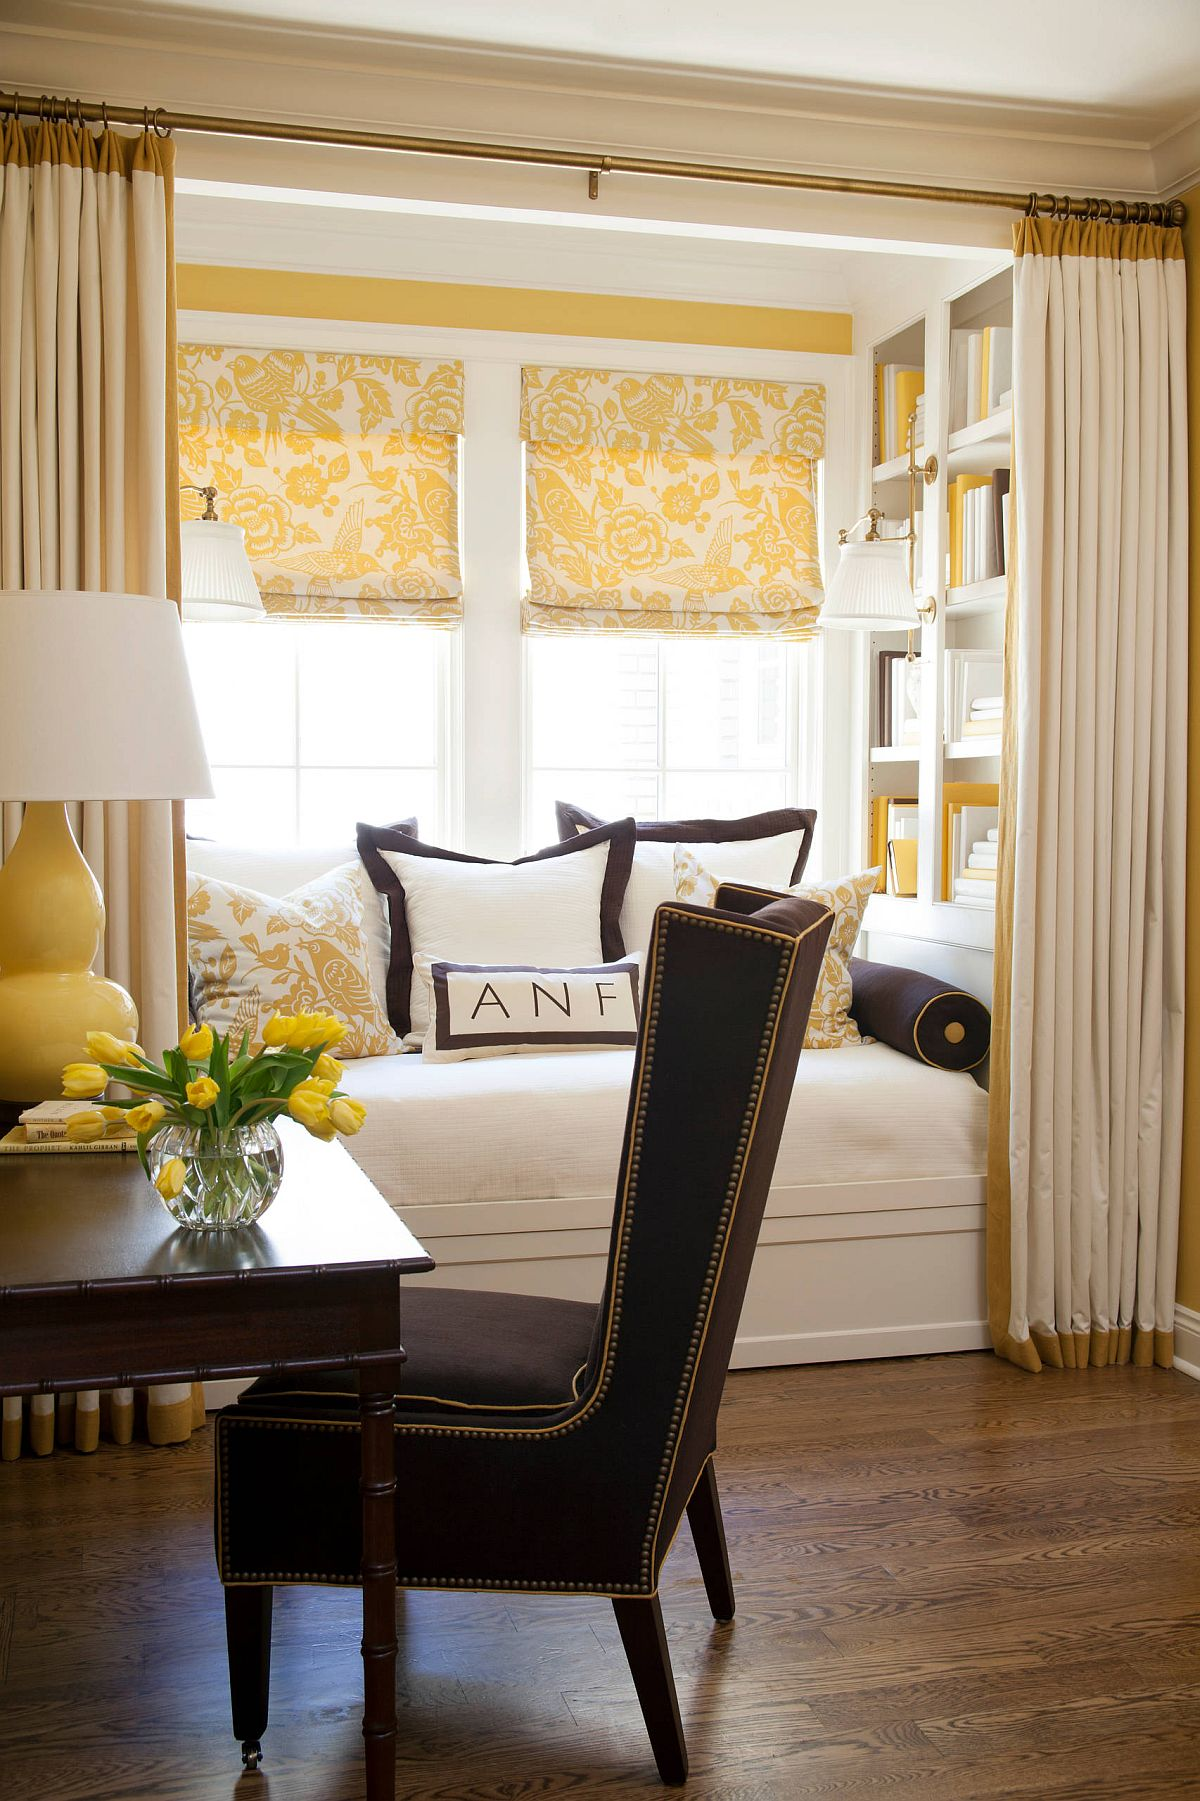 Drapes for the reading nook give a sense of privacy while delineating the space elegantly